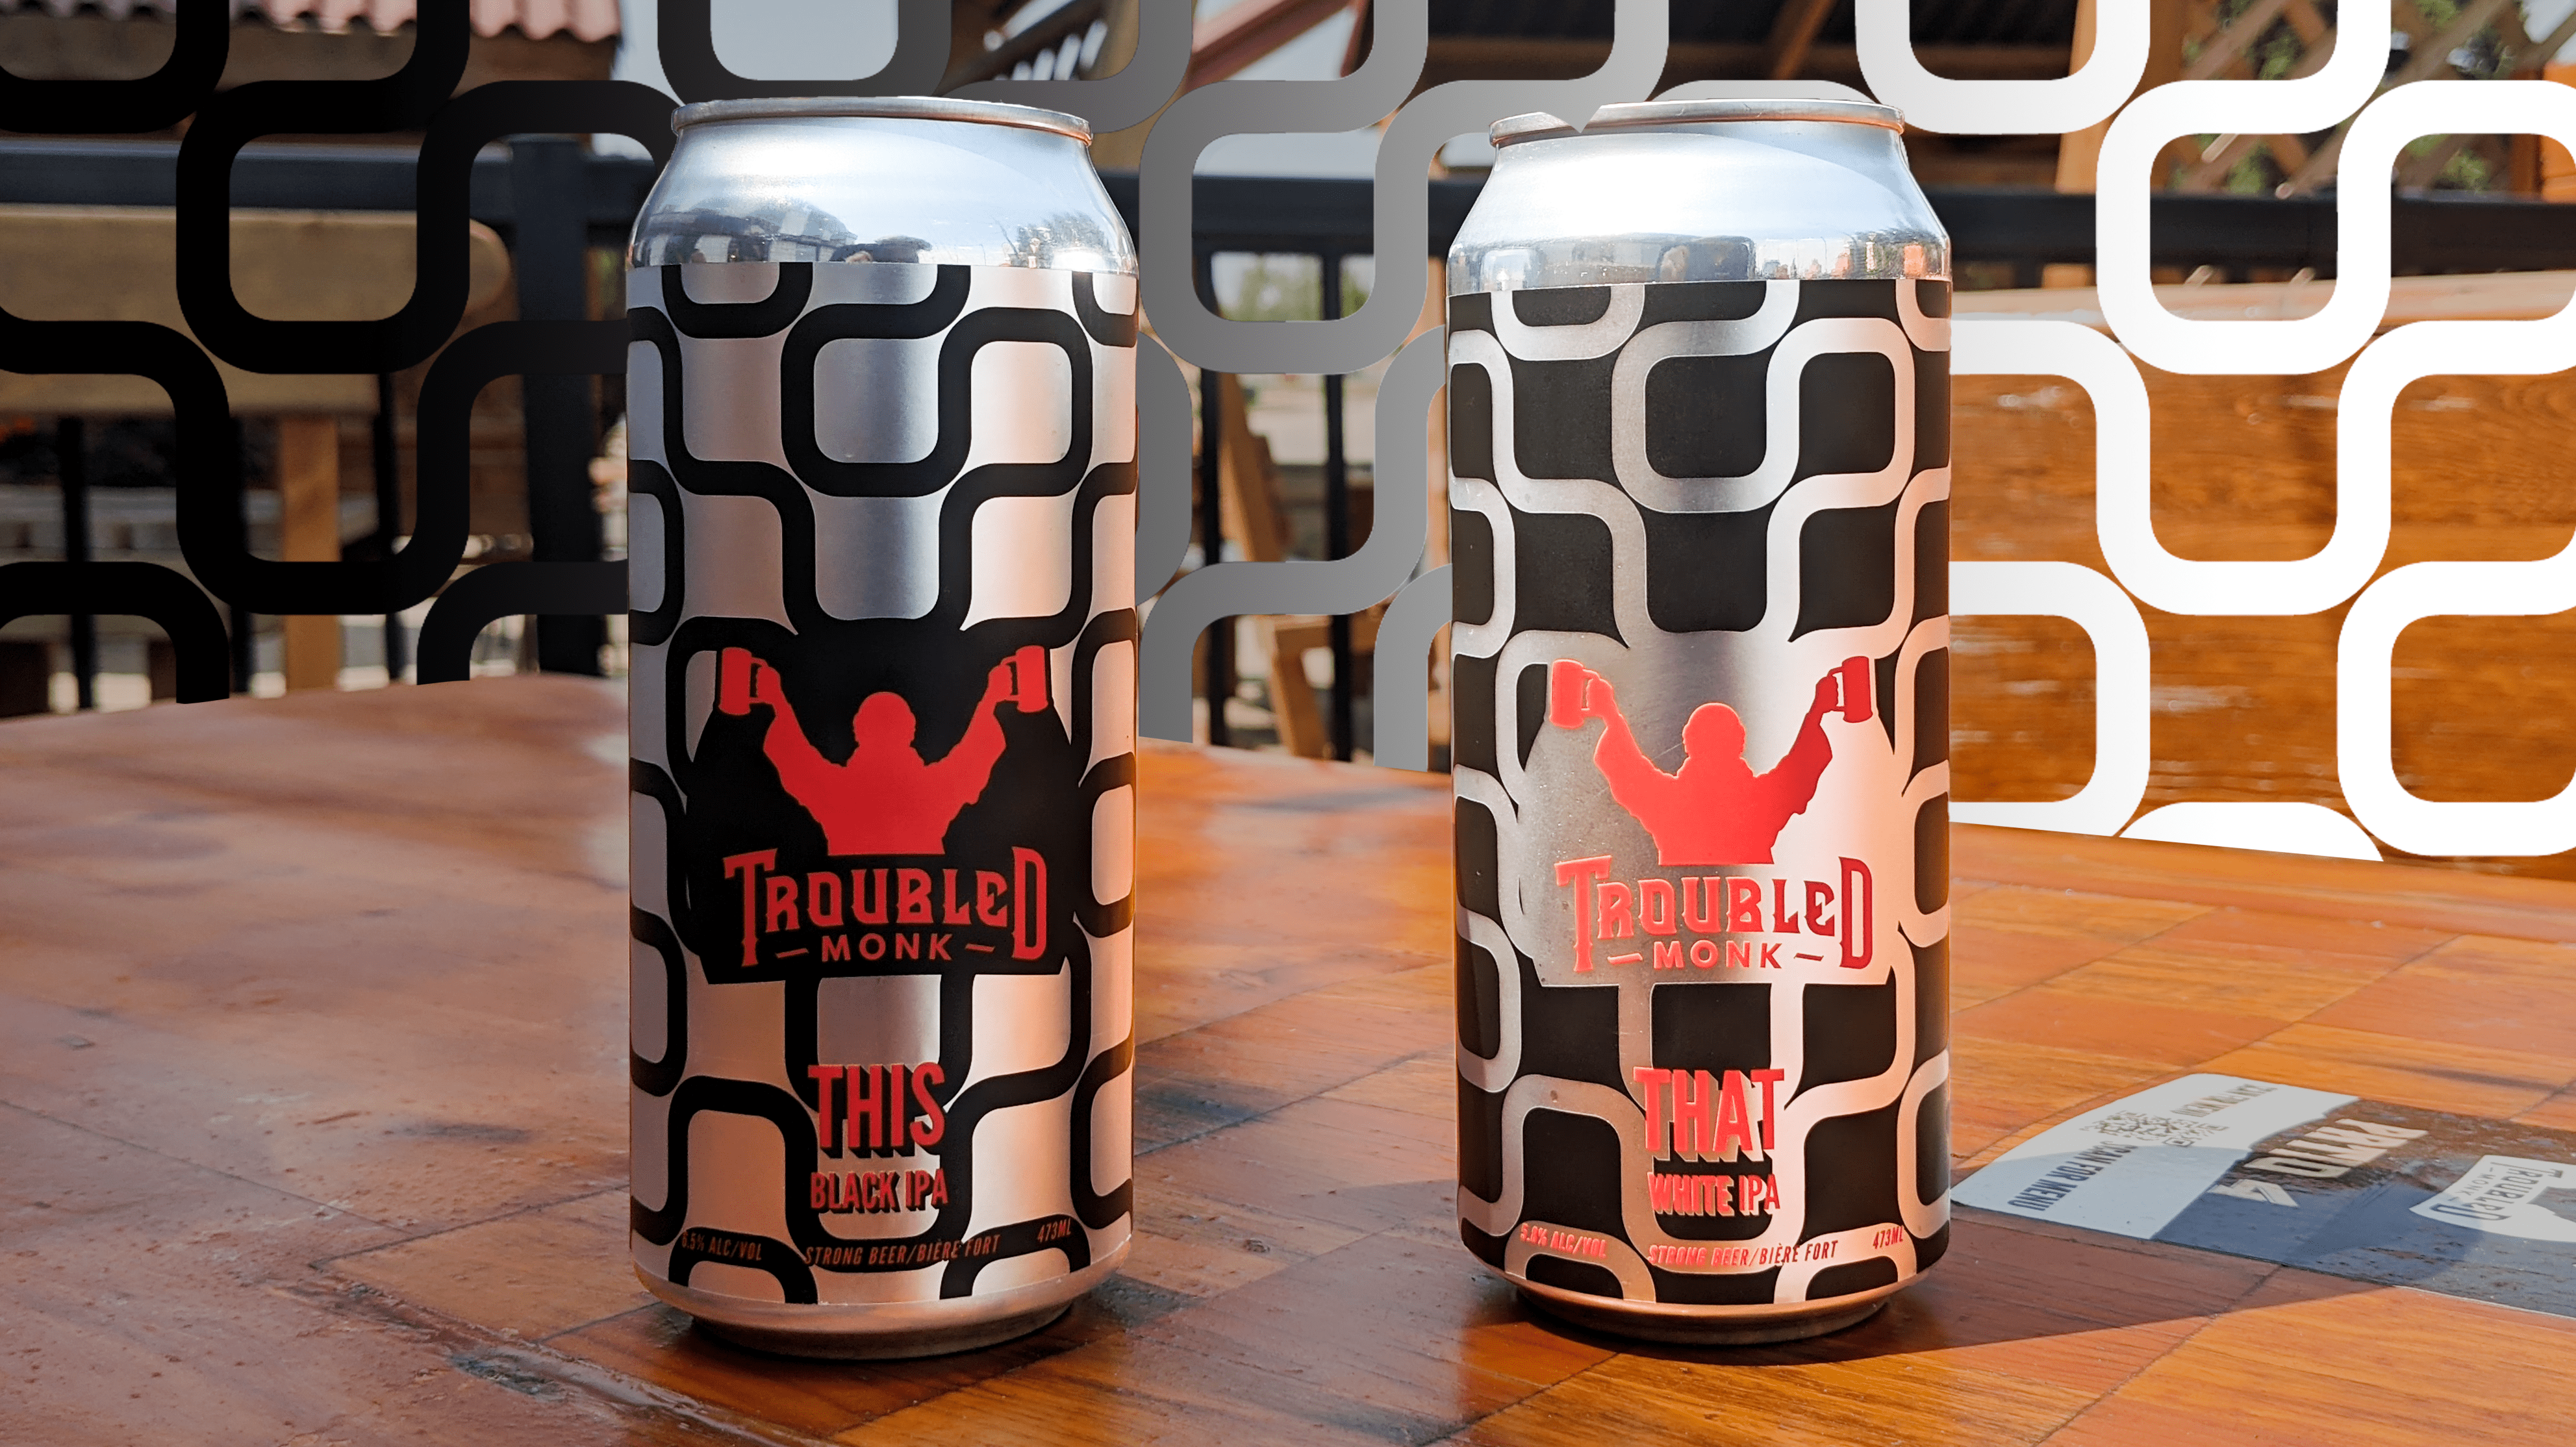 A can of THIS White IPA in silver and black, and a cna of THAT Black IPA in black and silver sitting on a table at troubled monk taproom